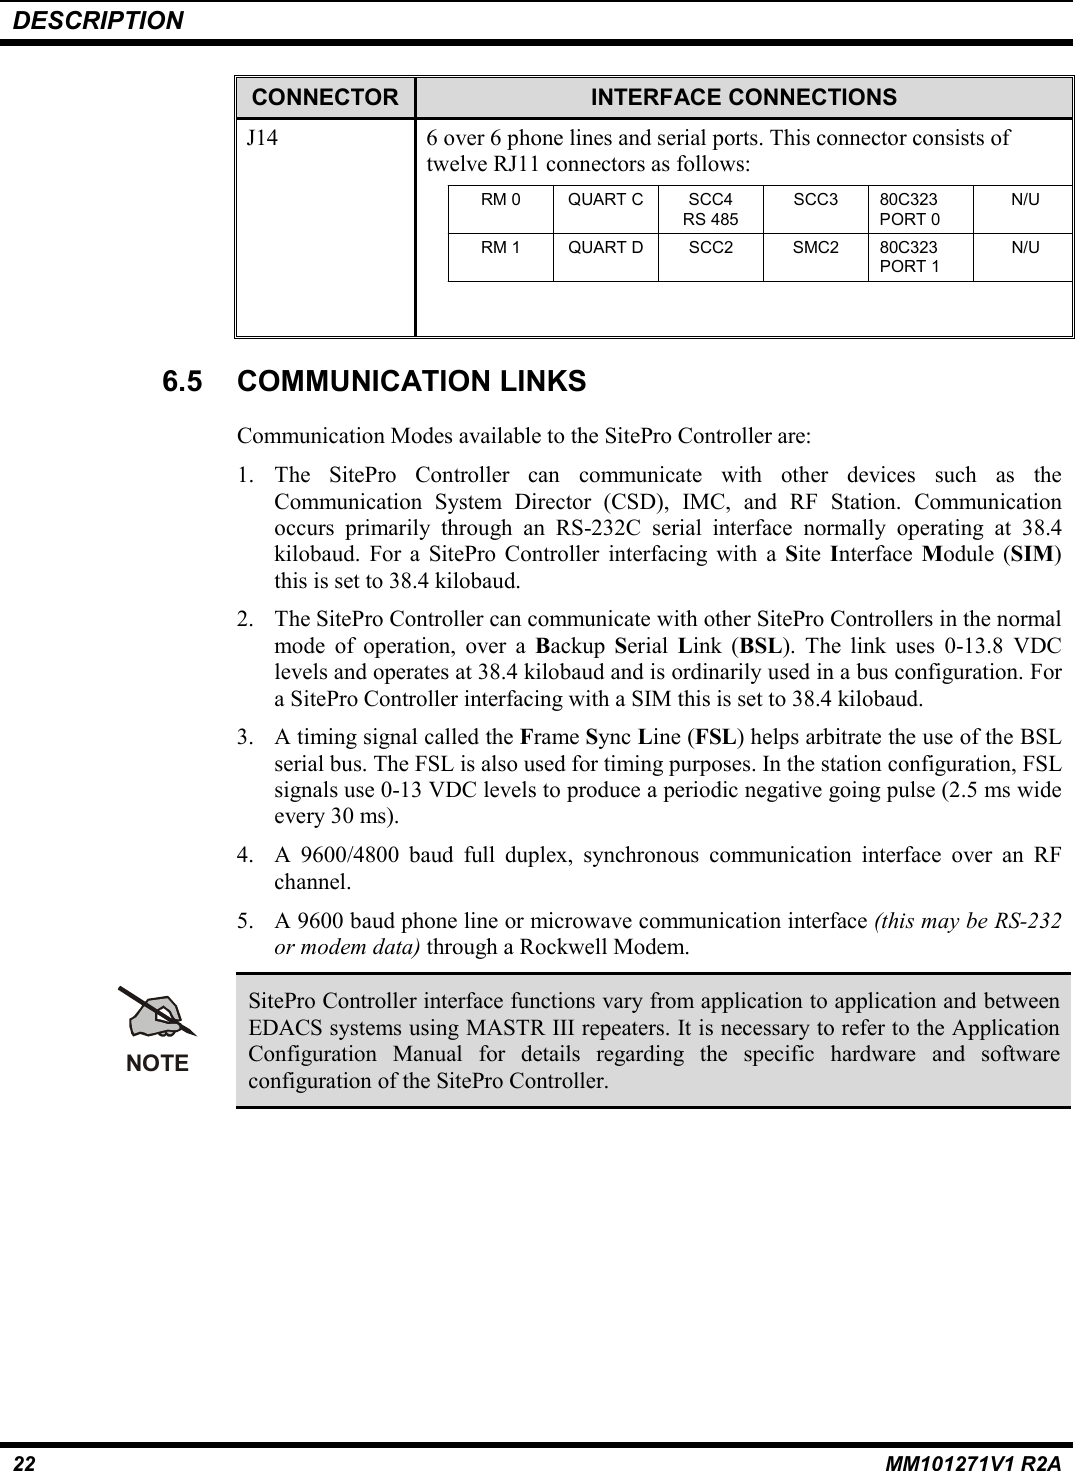 Harris Tr 0017 E Sitepro Base Station User Manual Site Pro Part 1 Rj11 Wiring Diagram Duplex Operation Description22 Mm101271v1 R2aconnector Interface Connectionsj14 6 Over Phone Lines And Serial Ports This Connector